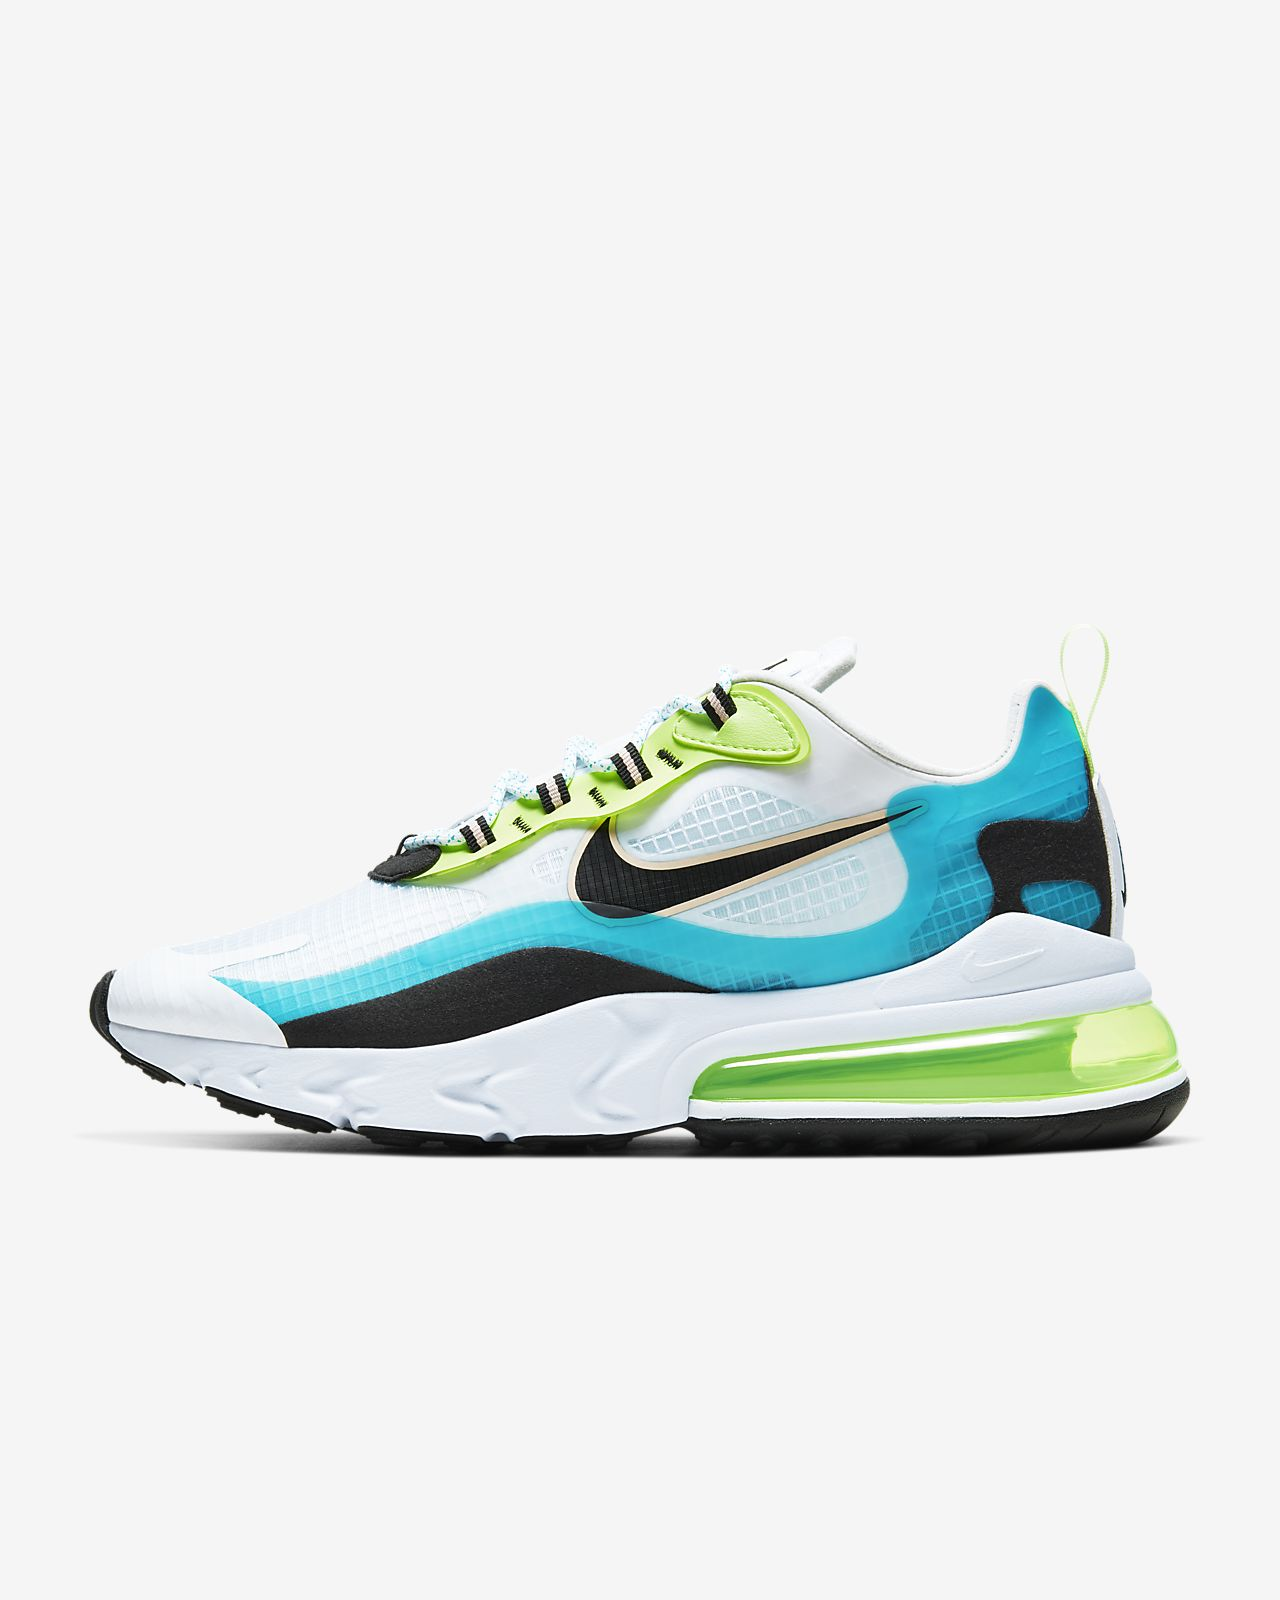 Nike Air Max 270 React SE Herenschoen